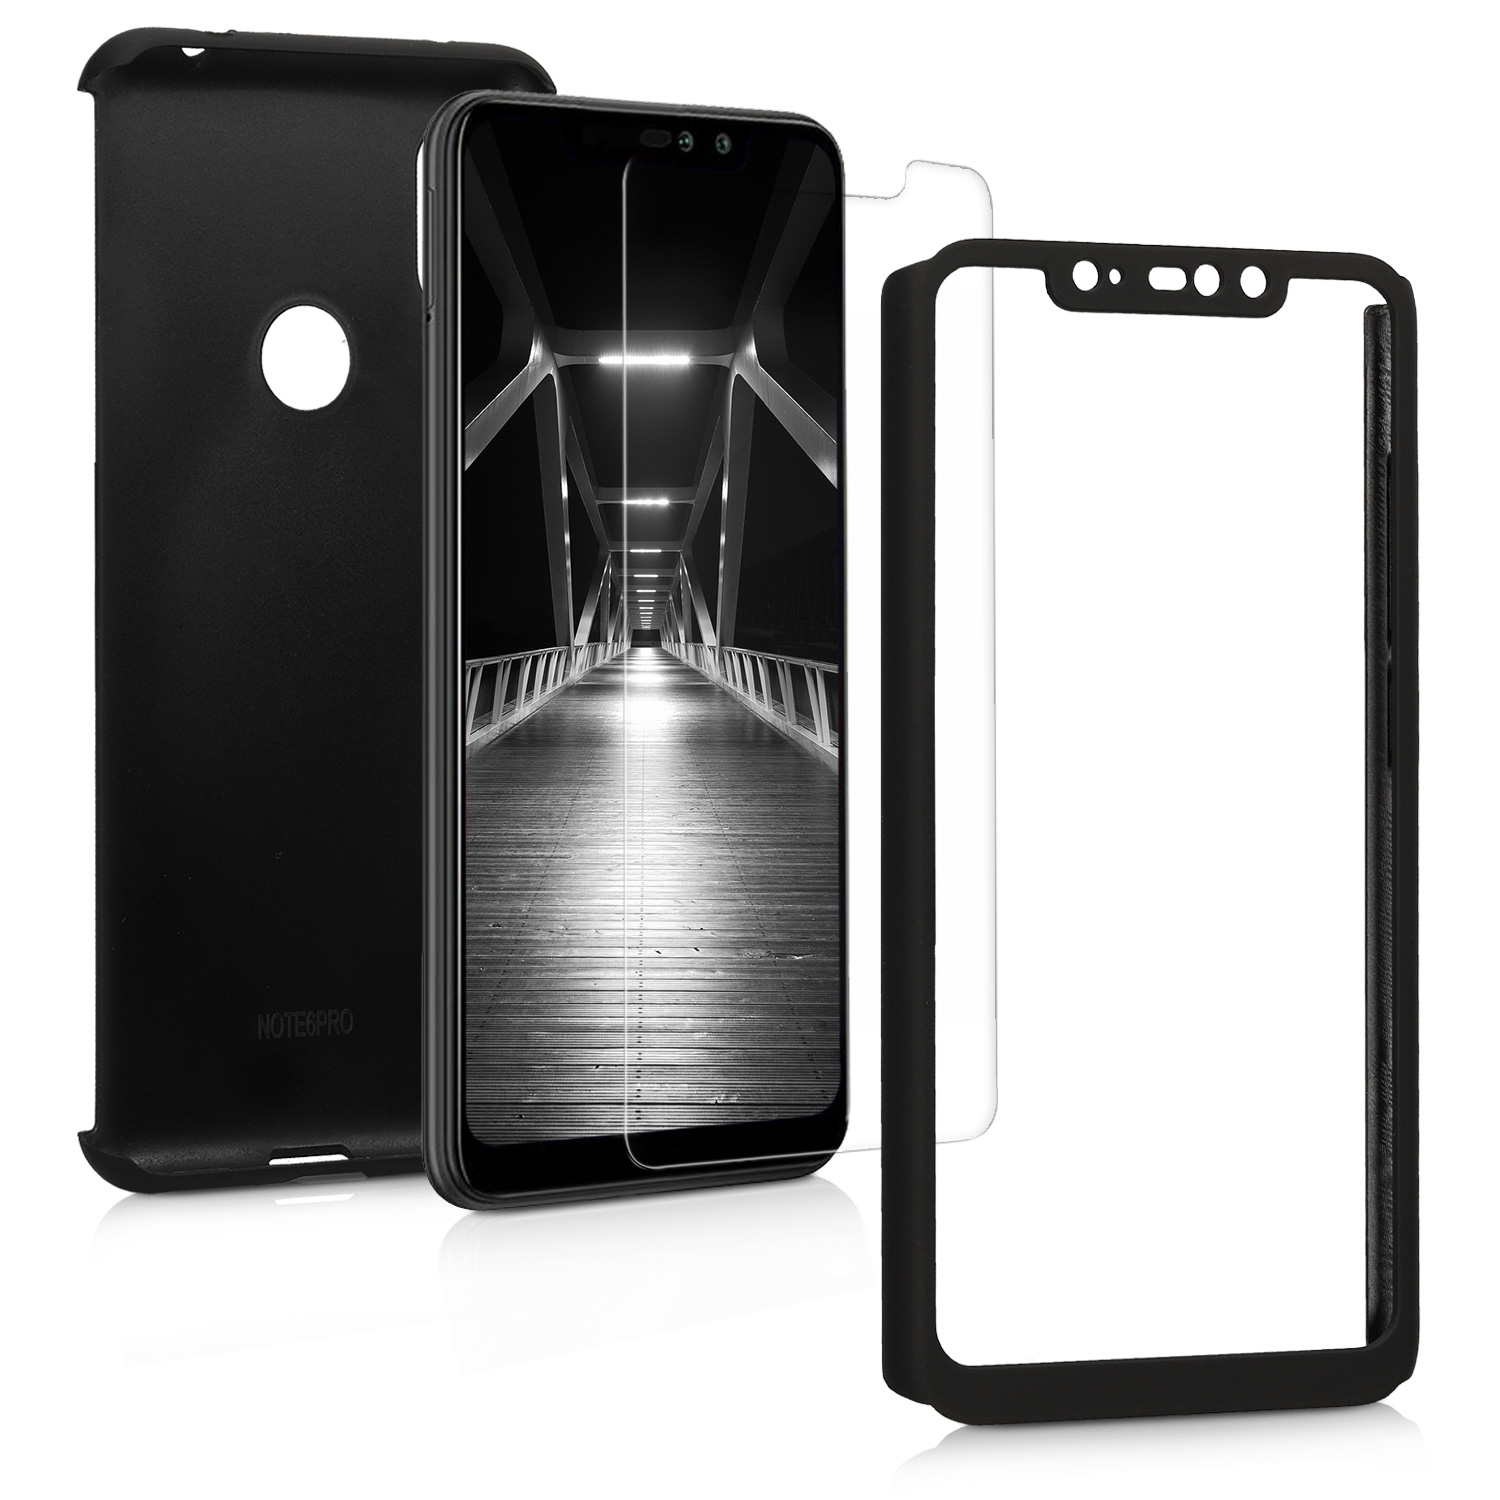 KW Θήκη Full Body για Xiaomi Redmi Note 6 Pro & Tempered Glass - Metallic Black (46507.68)